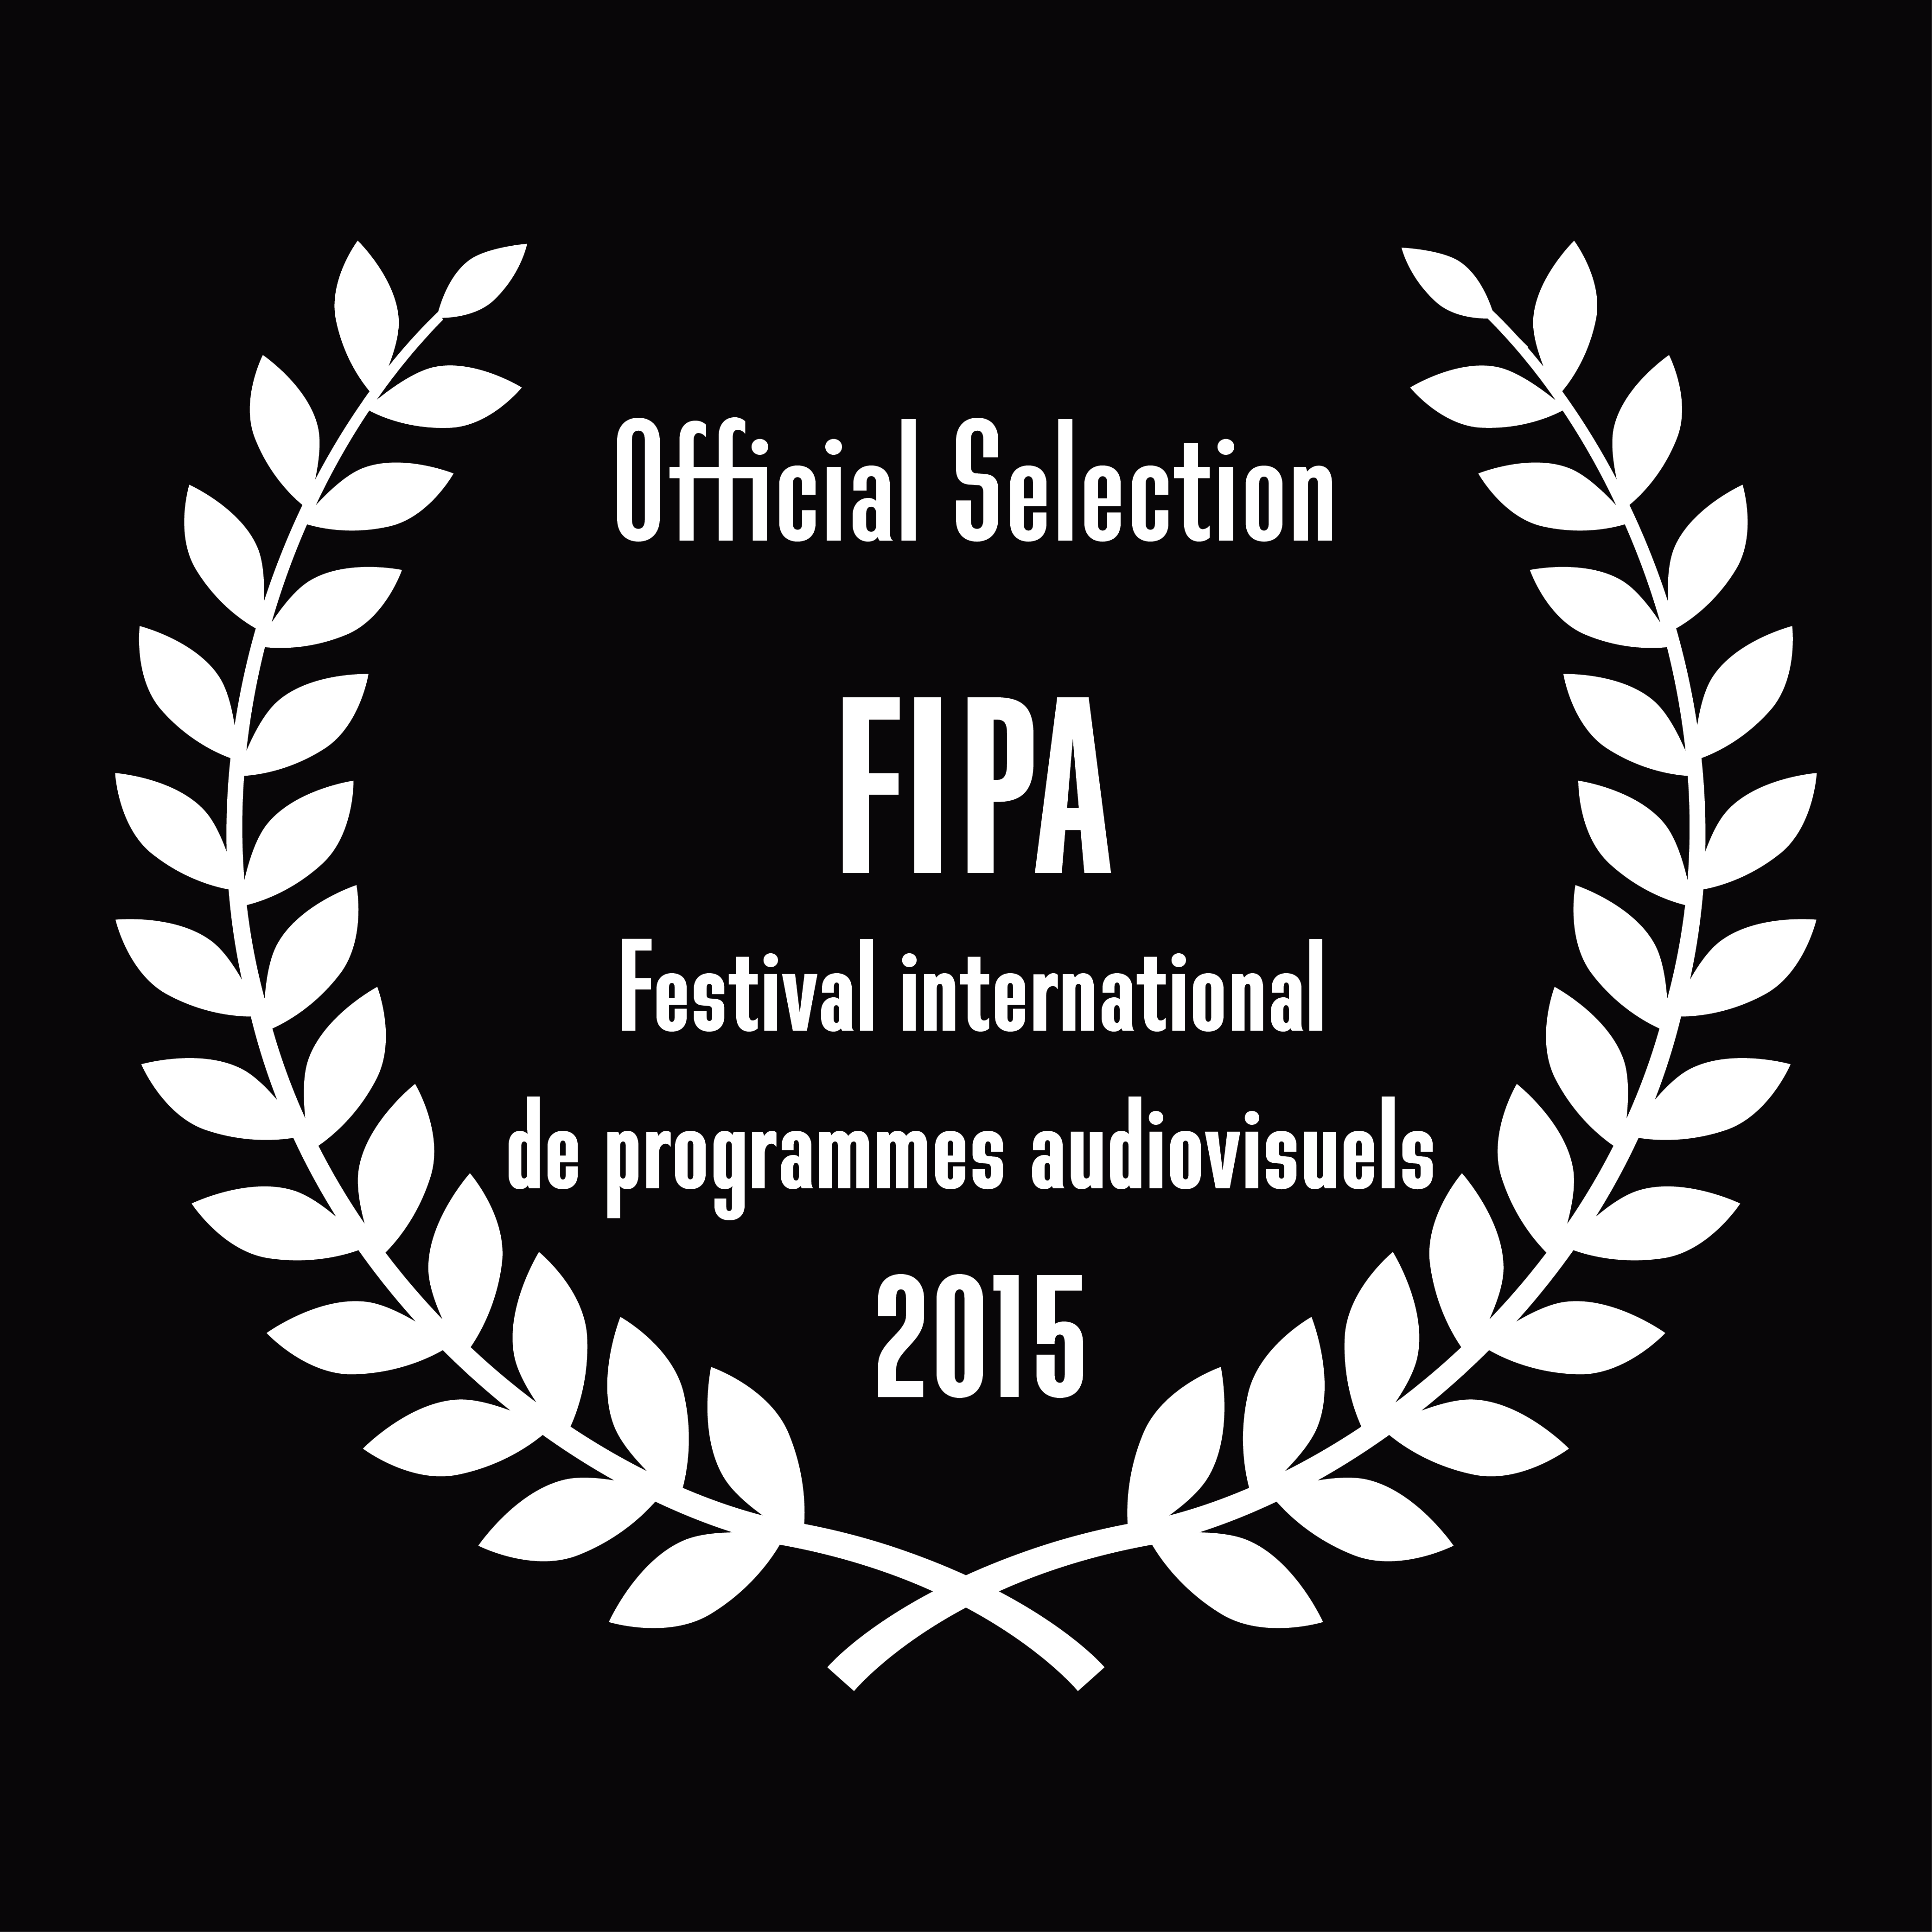 Official Selection - FIPA